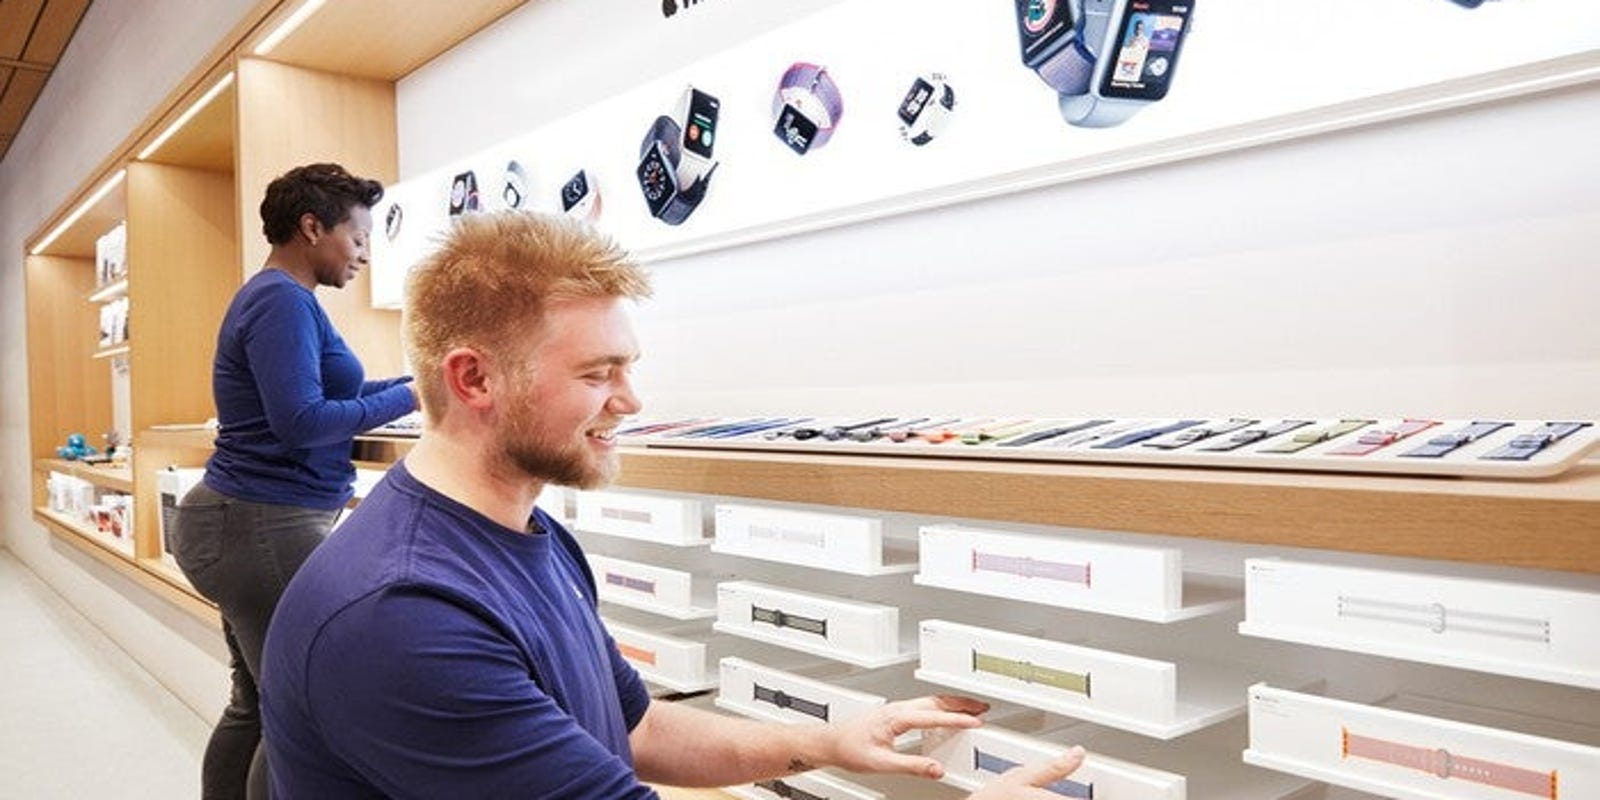 Report: Apple to start shipping iPhones iPads and other devices from retail stores to speed local delivery – USA TODAY